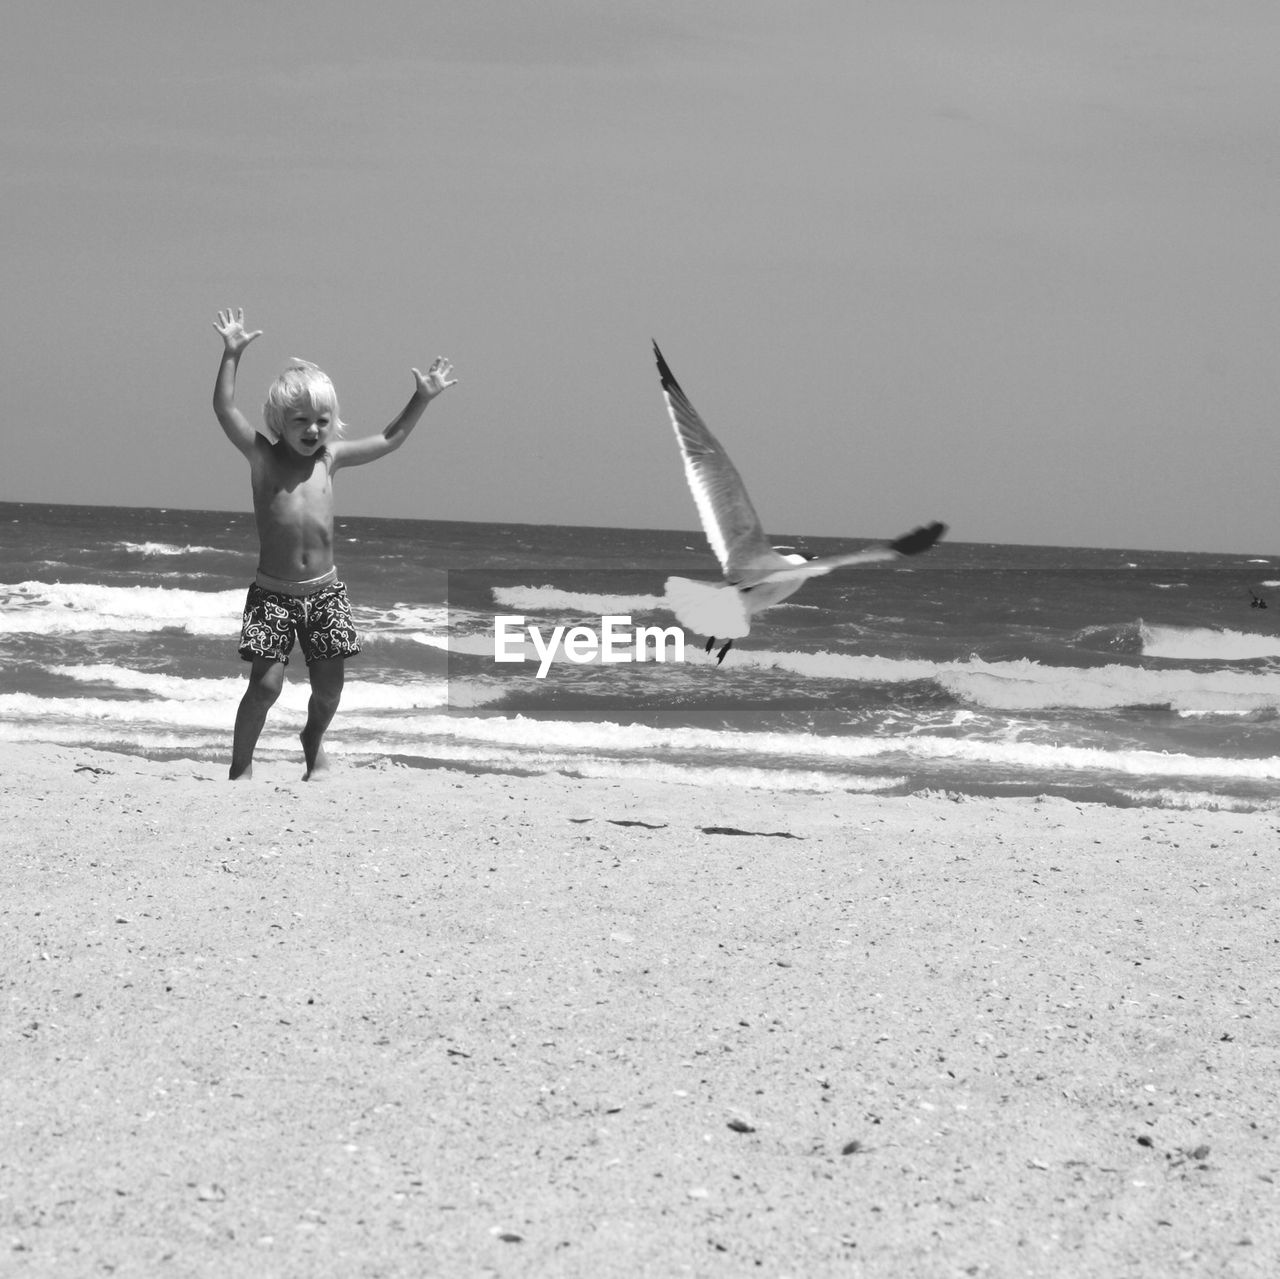 Young boy chasing seagull on beach